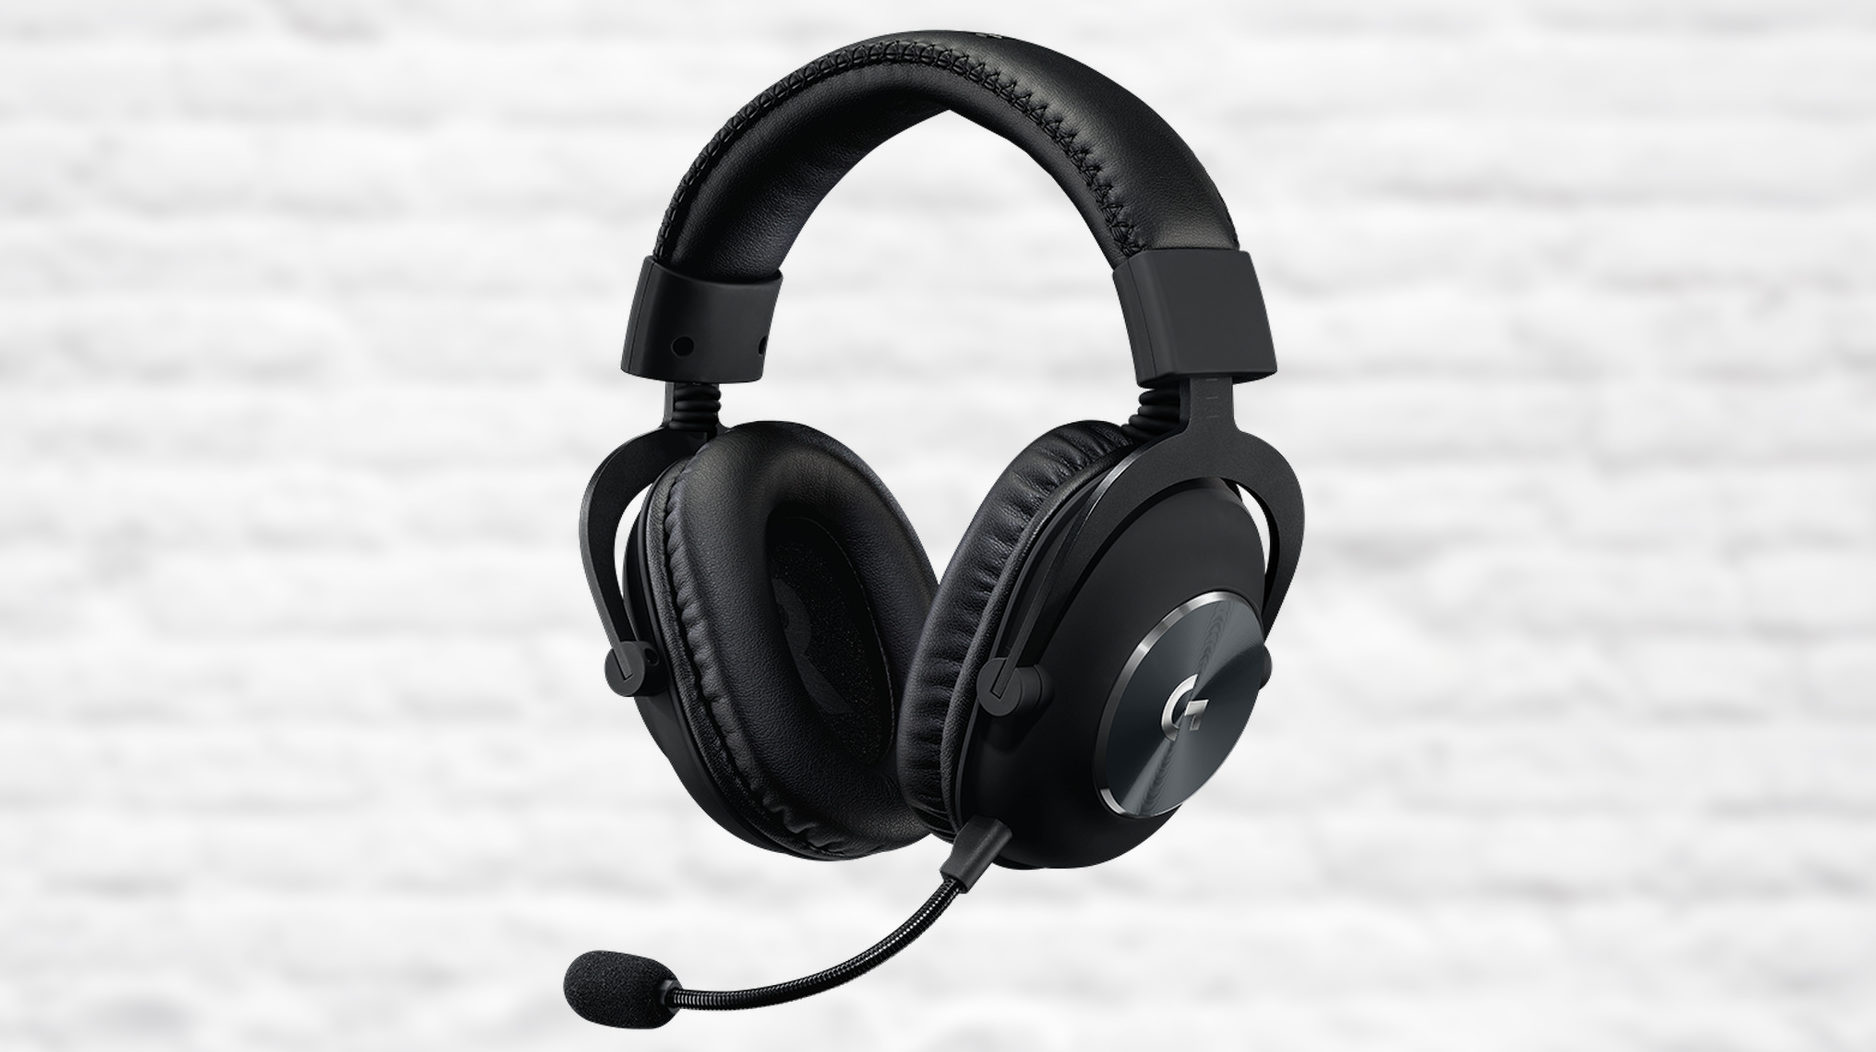 Logitech G PRO X Gaming Headset review: A strong option for